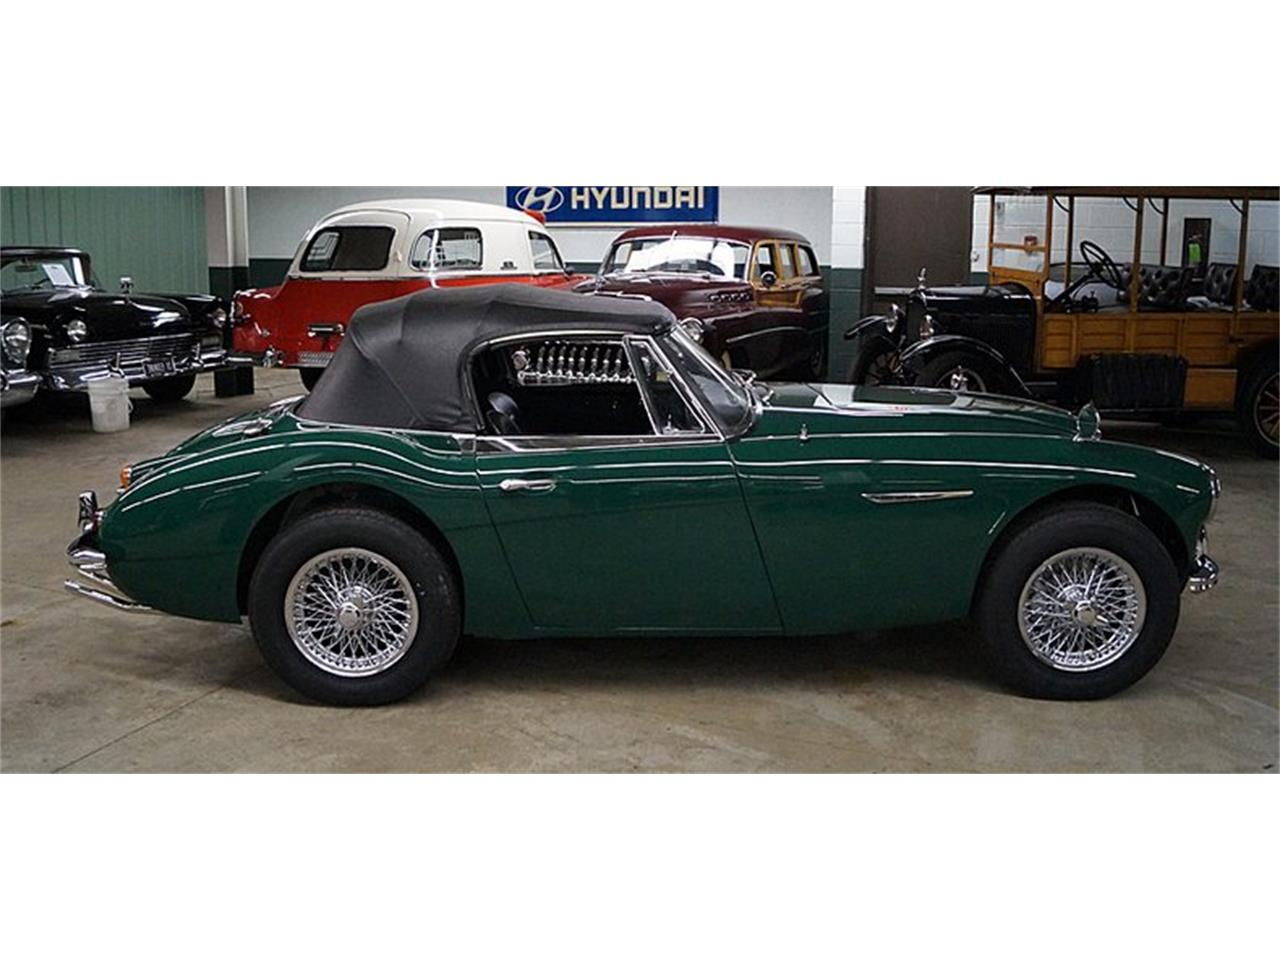 Large Picture of '67 Austin-Healey 3000 Mark III BJ8 - R16P